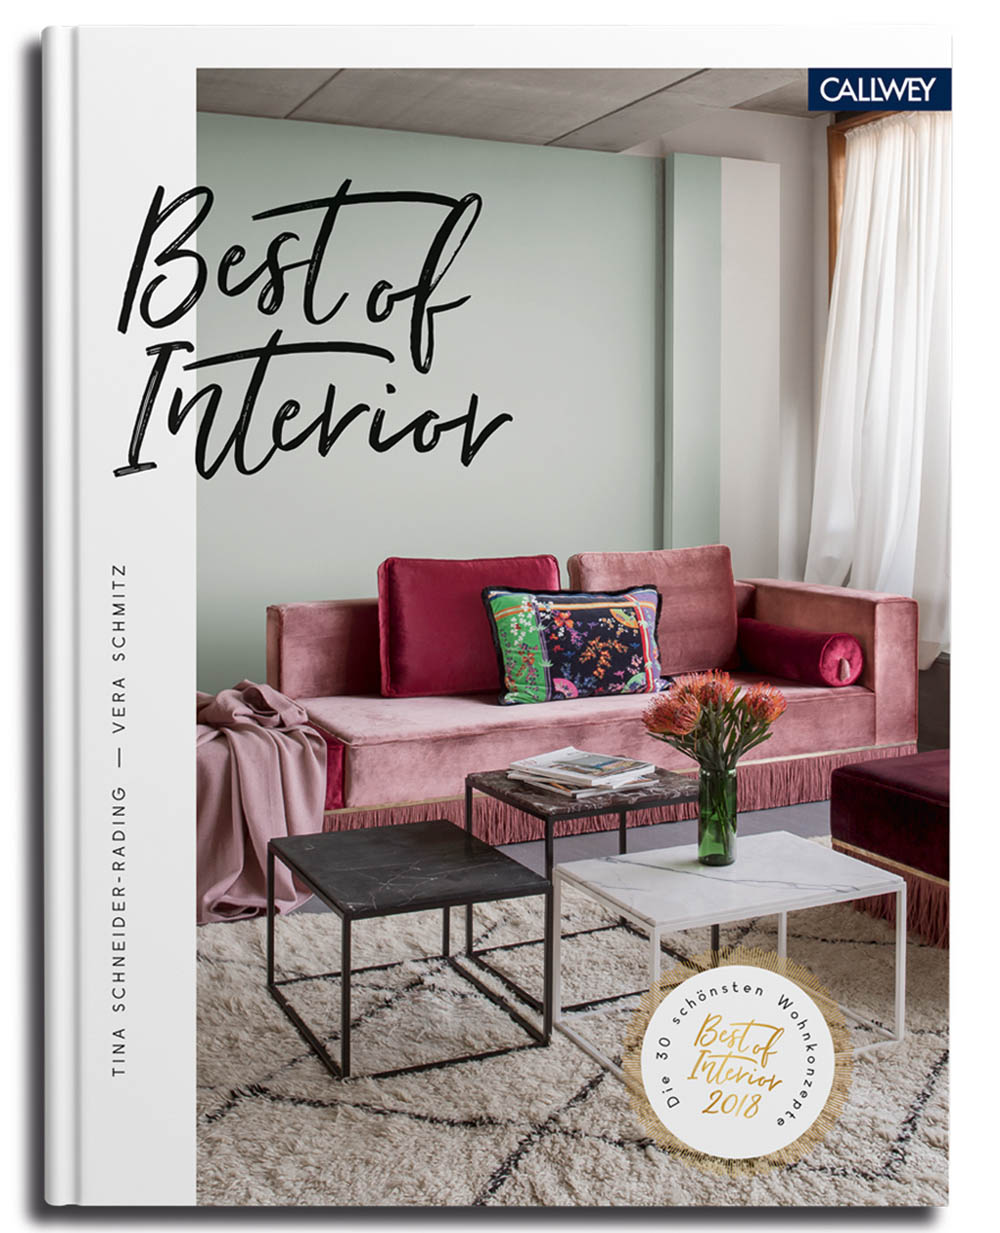 Best of interior 2018 callwey for Interior designer gesucht